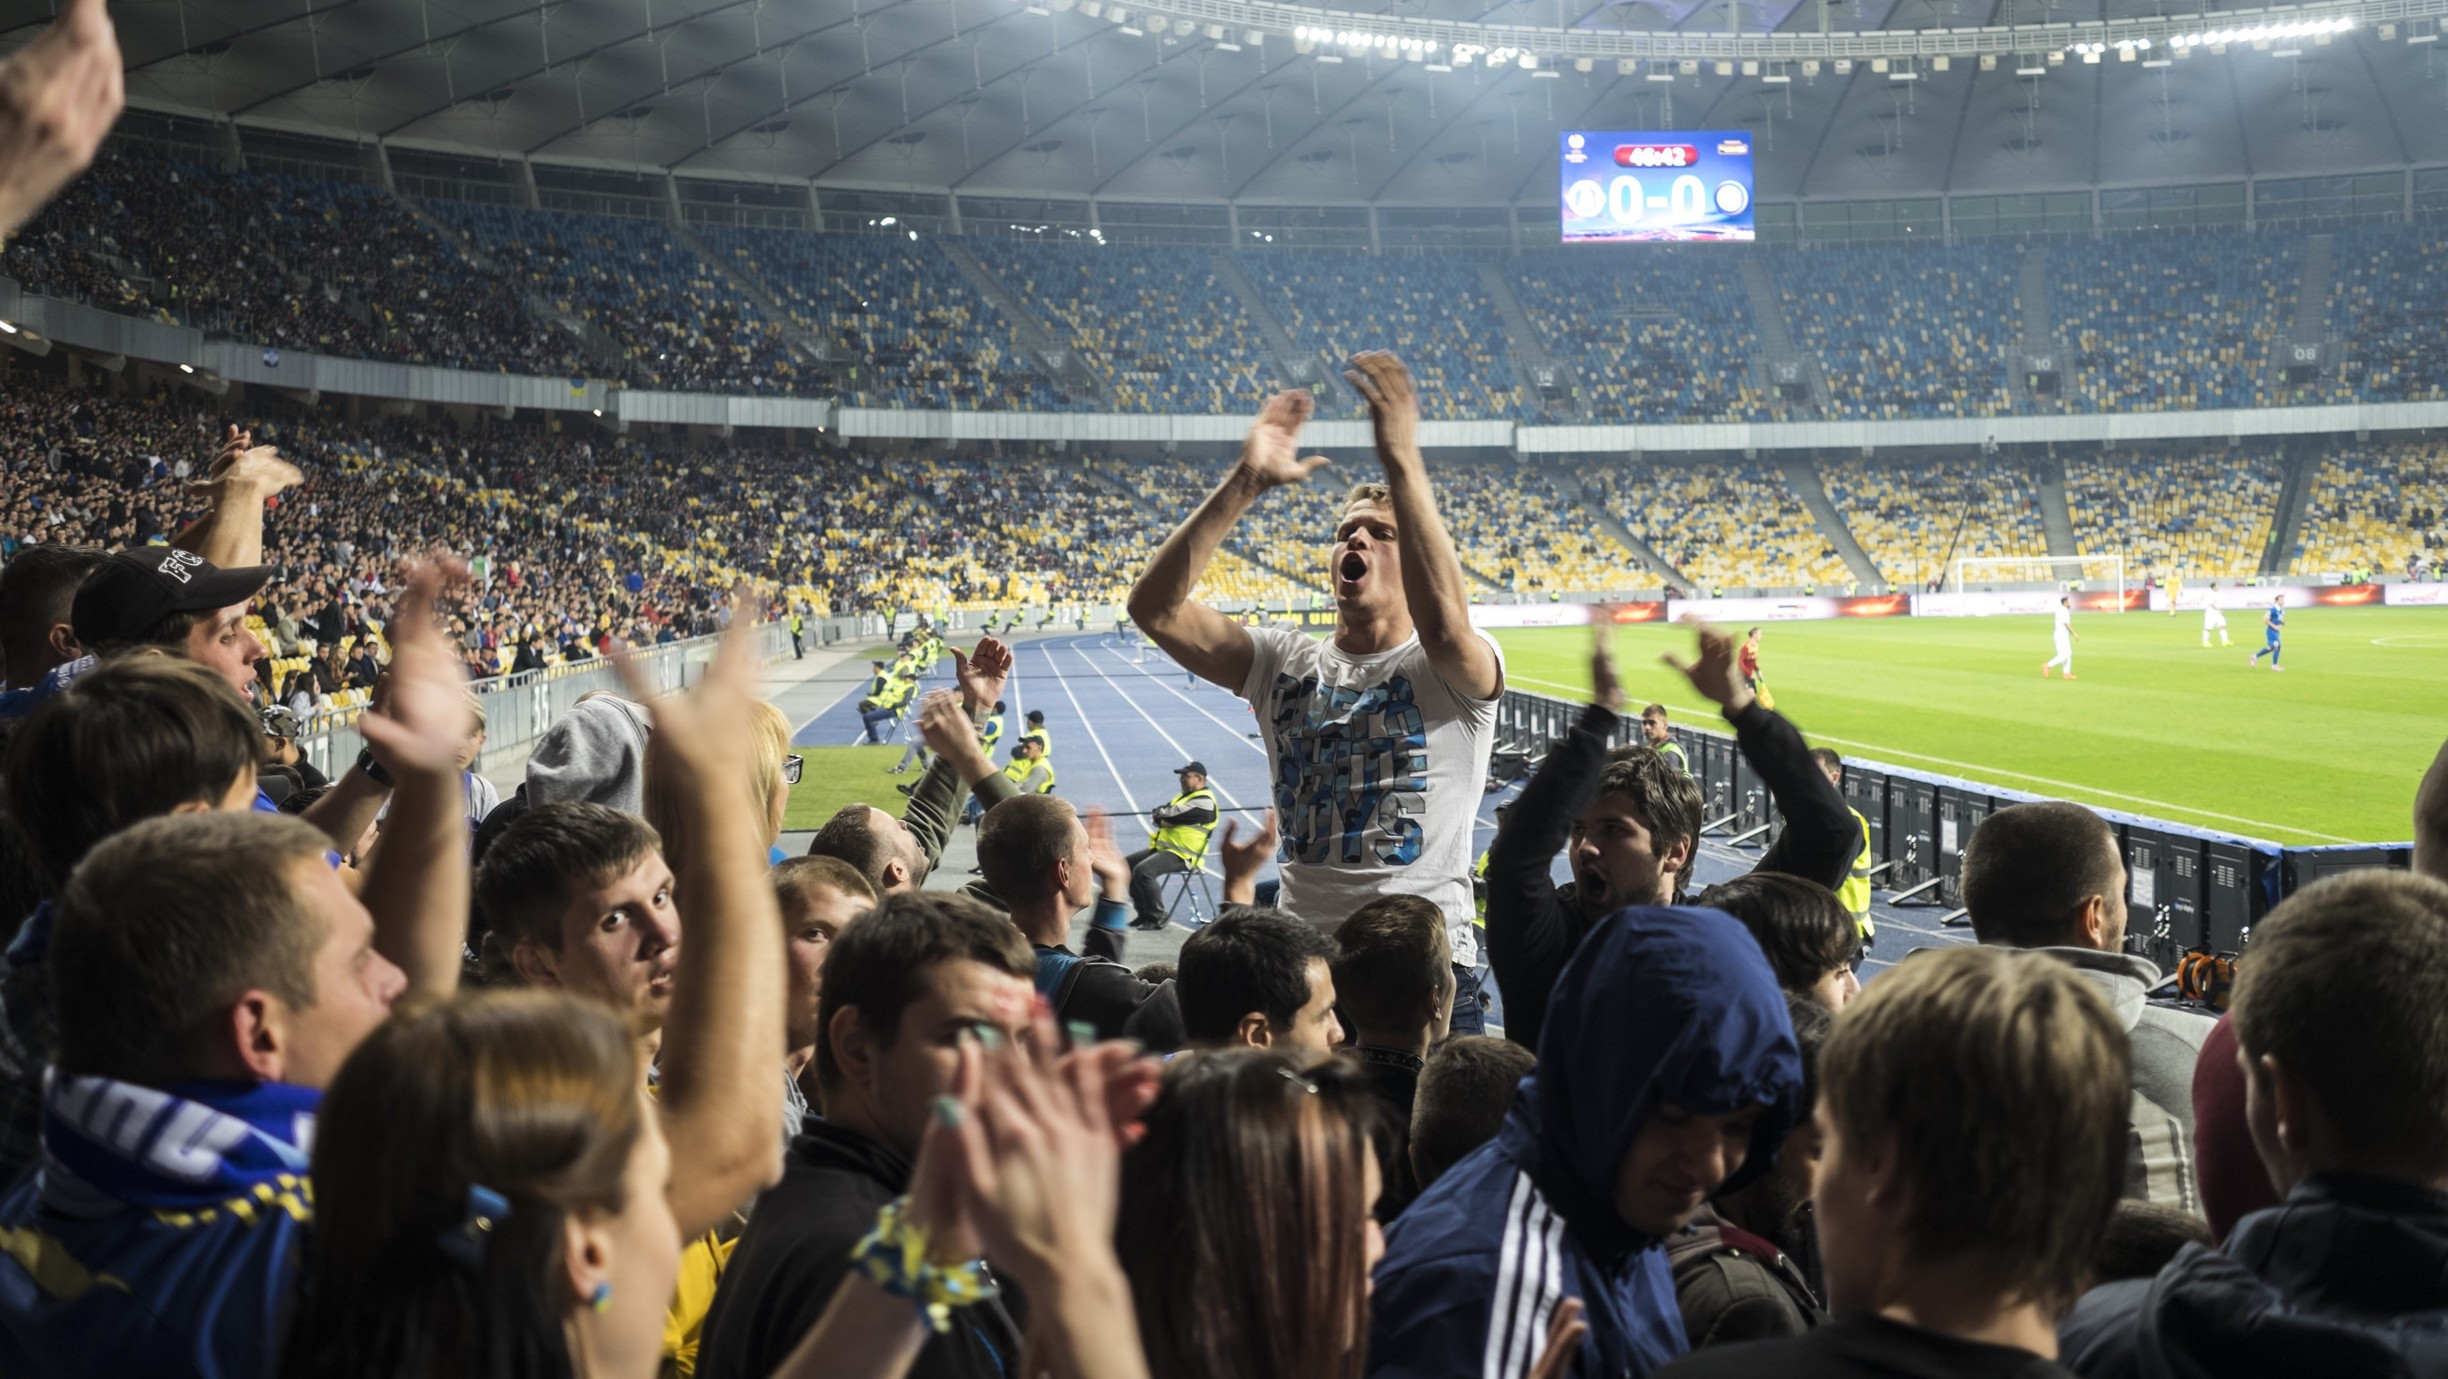 White Nationalism, Left-Wing Alliances, and Straight Edge Lifestyles: Ukraine's Soccer Fans Turned Soldiers